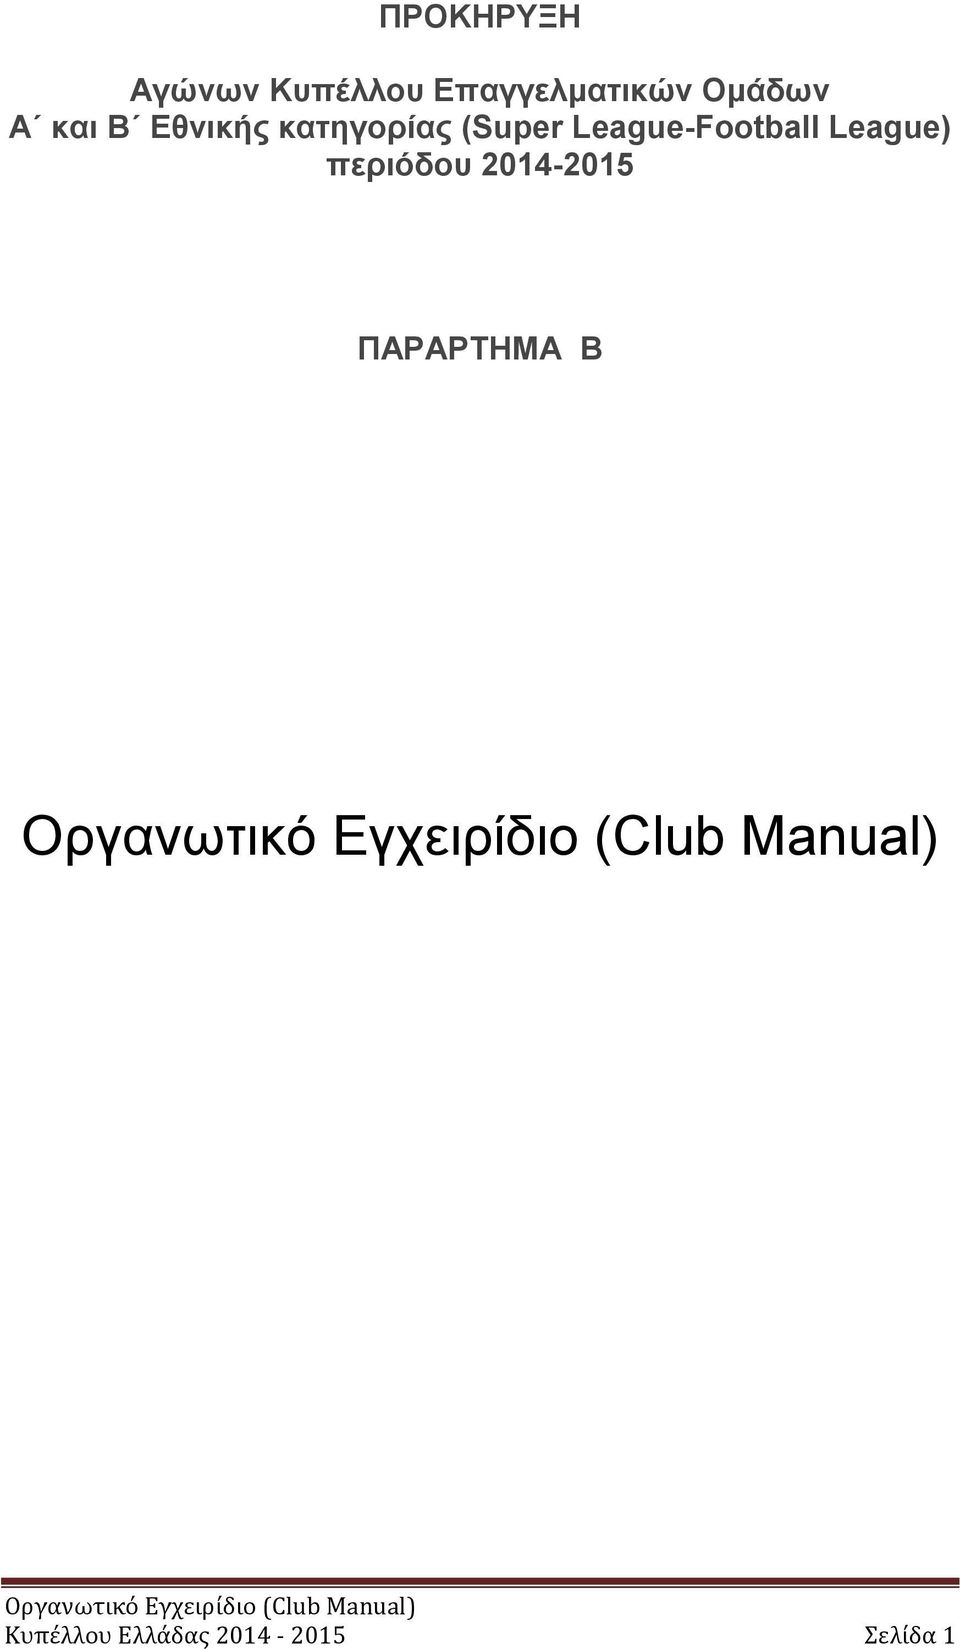 League-Football League) περιόδου 2014-2015